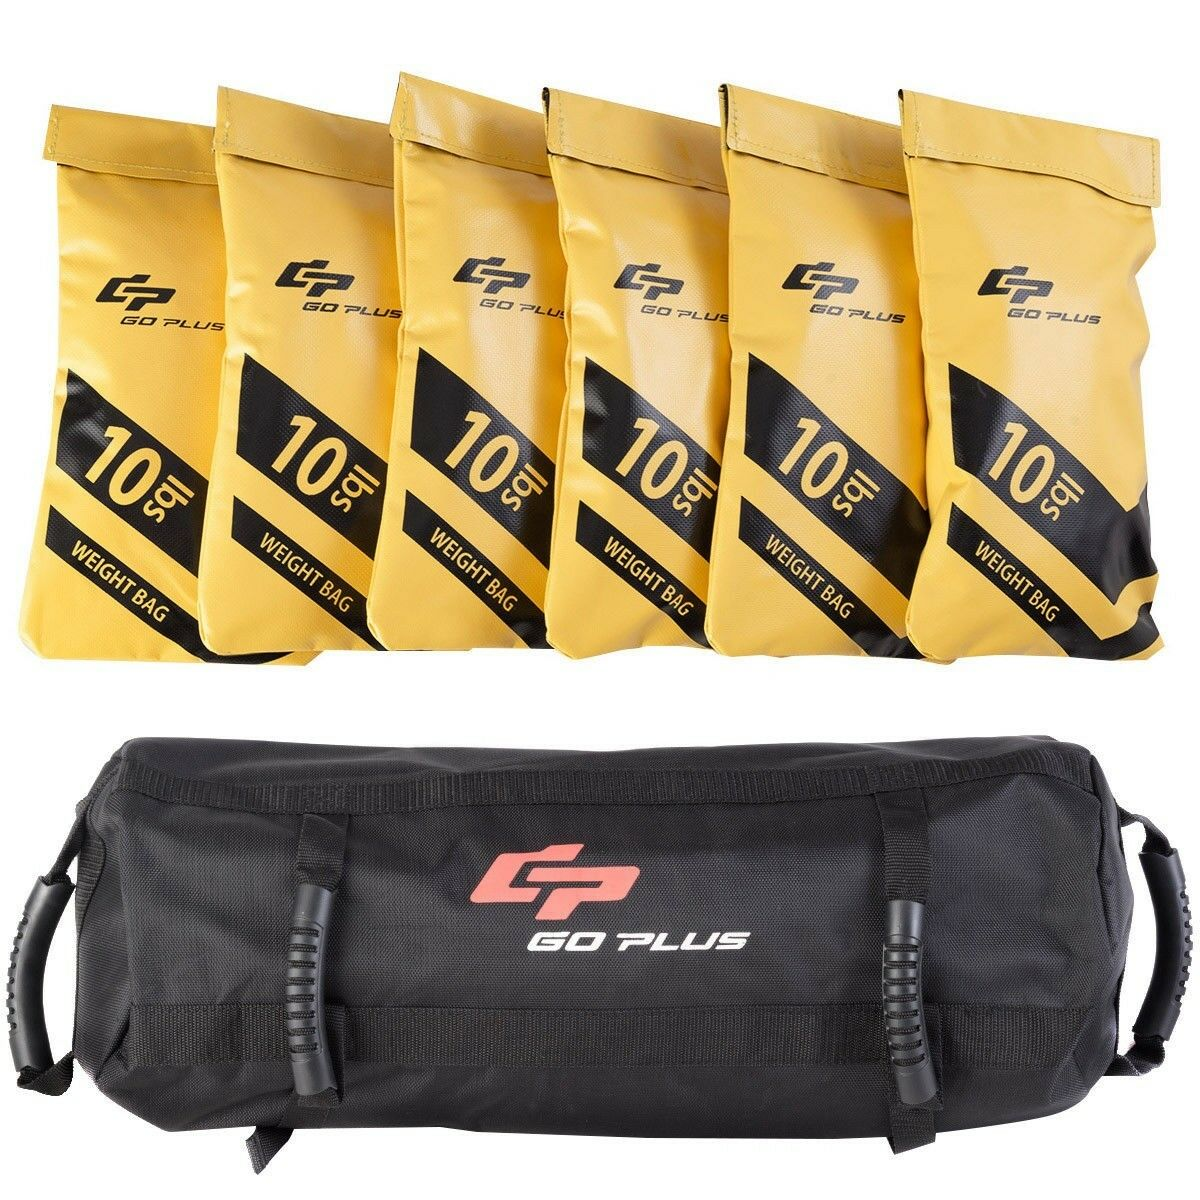 20 40 60lbs Goplus Fitness Exercise Weighted Sandbags Sport Weight Training Set